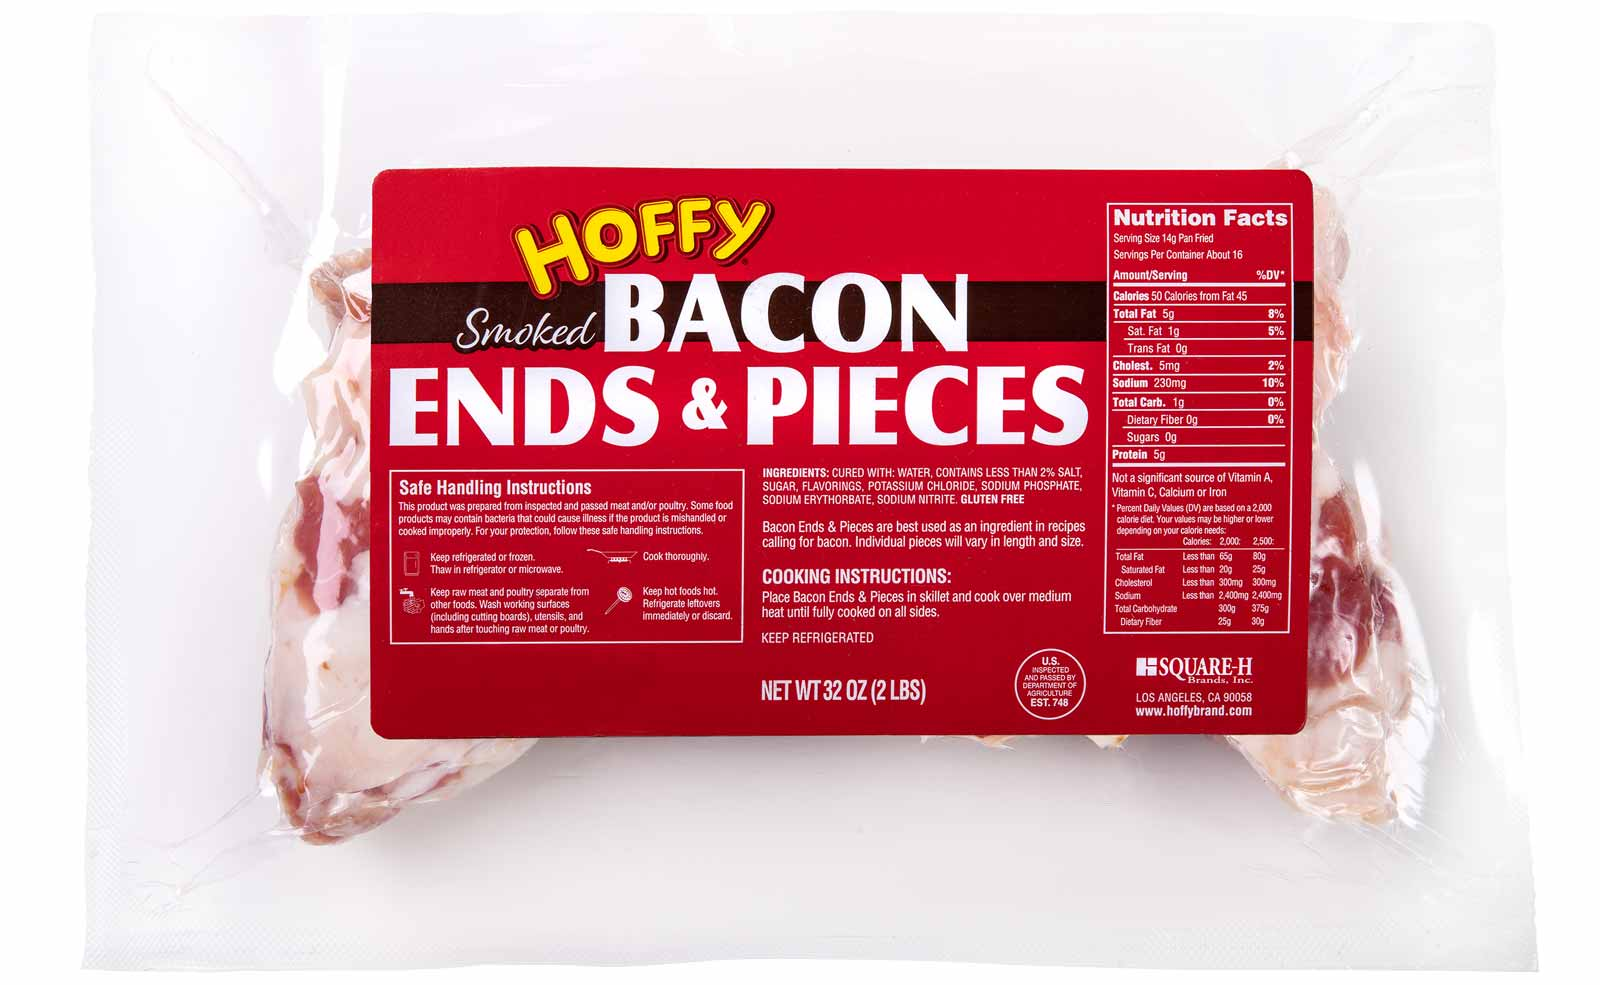 Hoffy Bacon Ends & Pieces Packaging